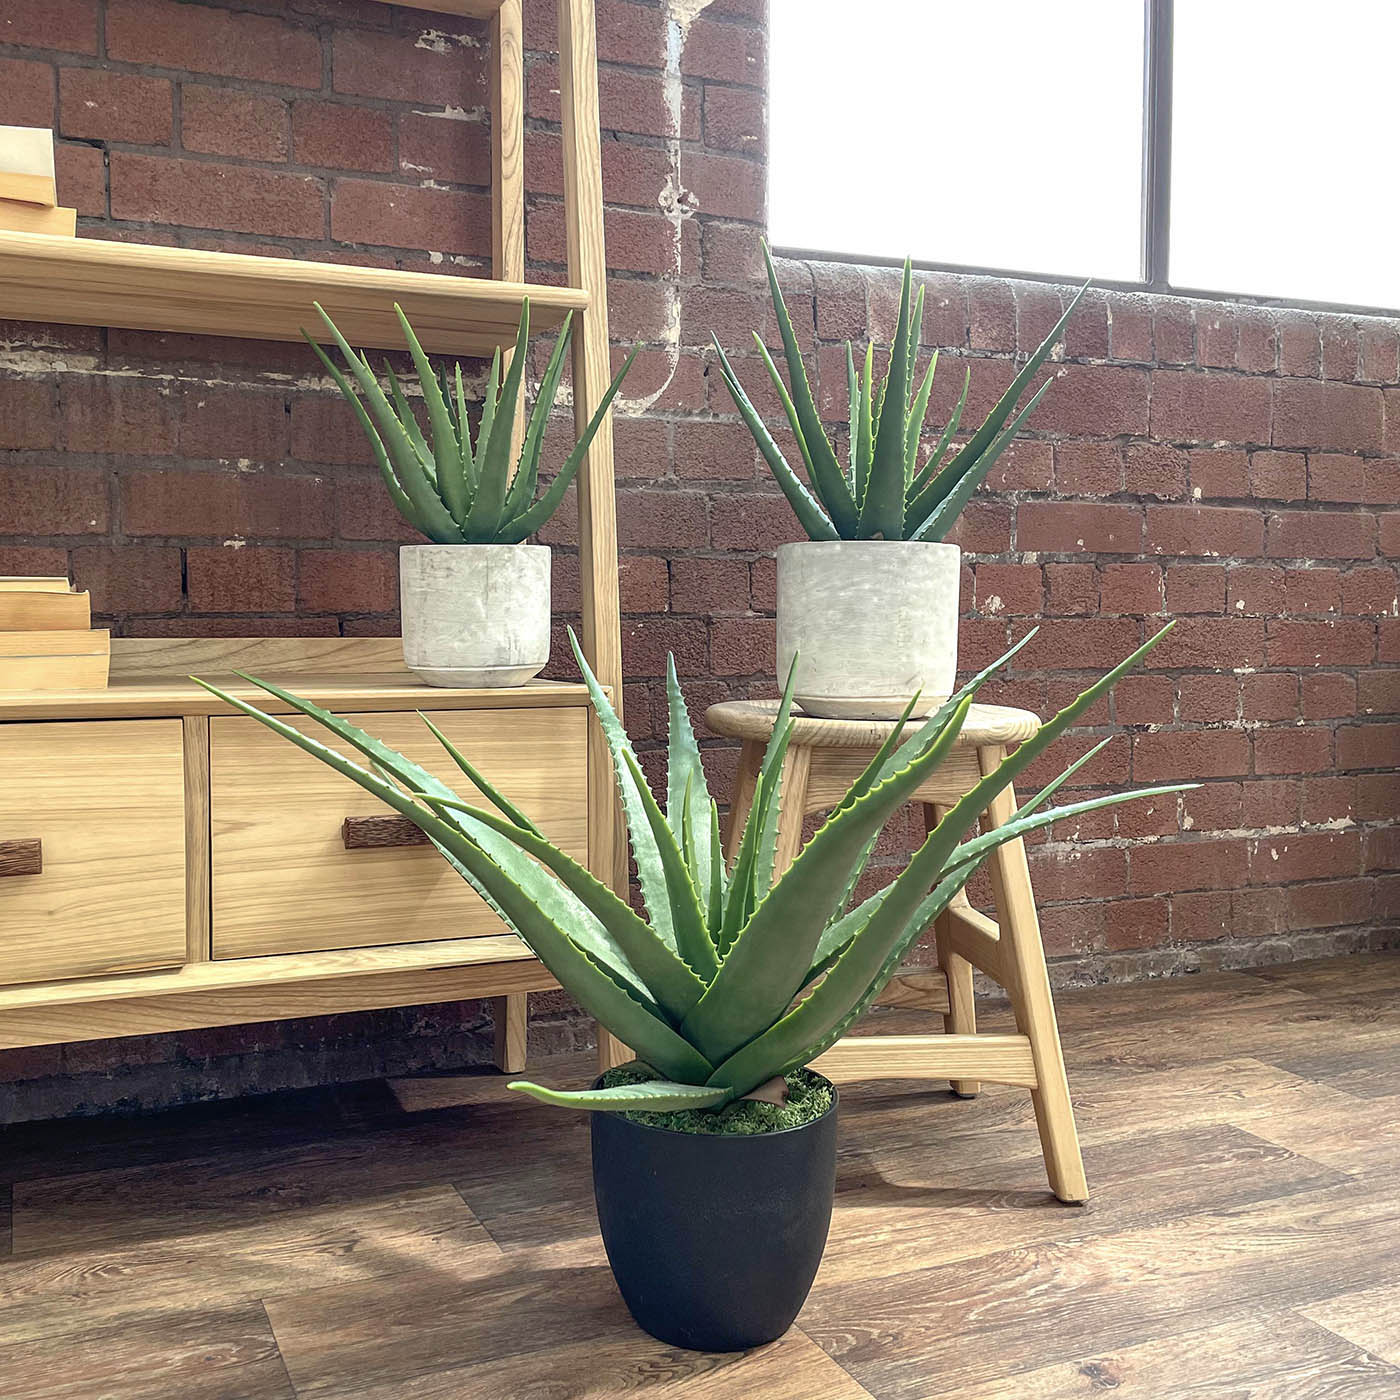 Three sizes of artificial allow vera plants on display